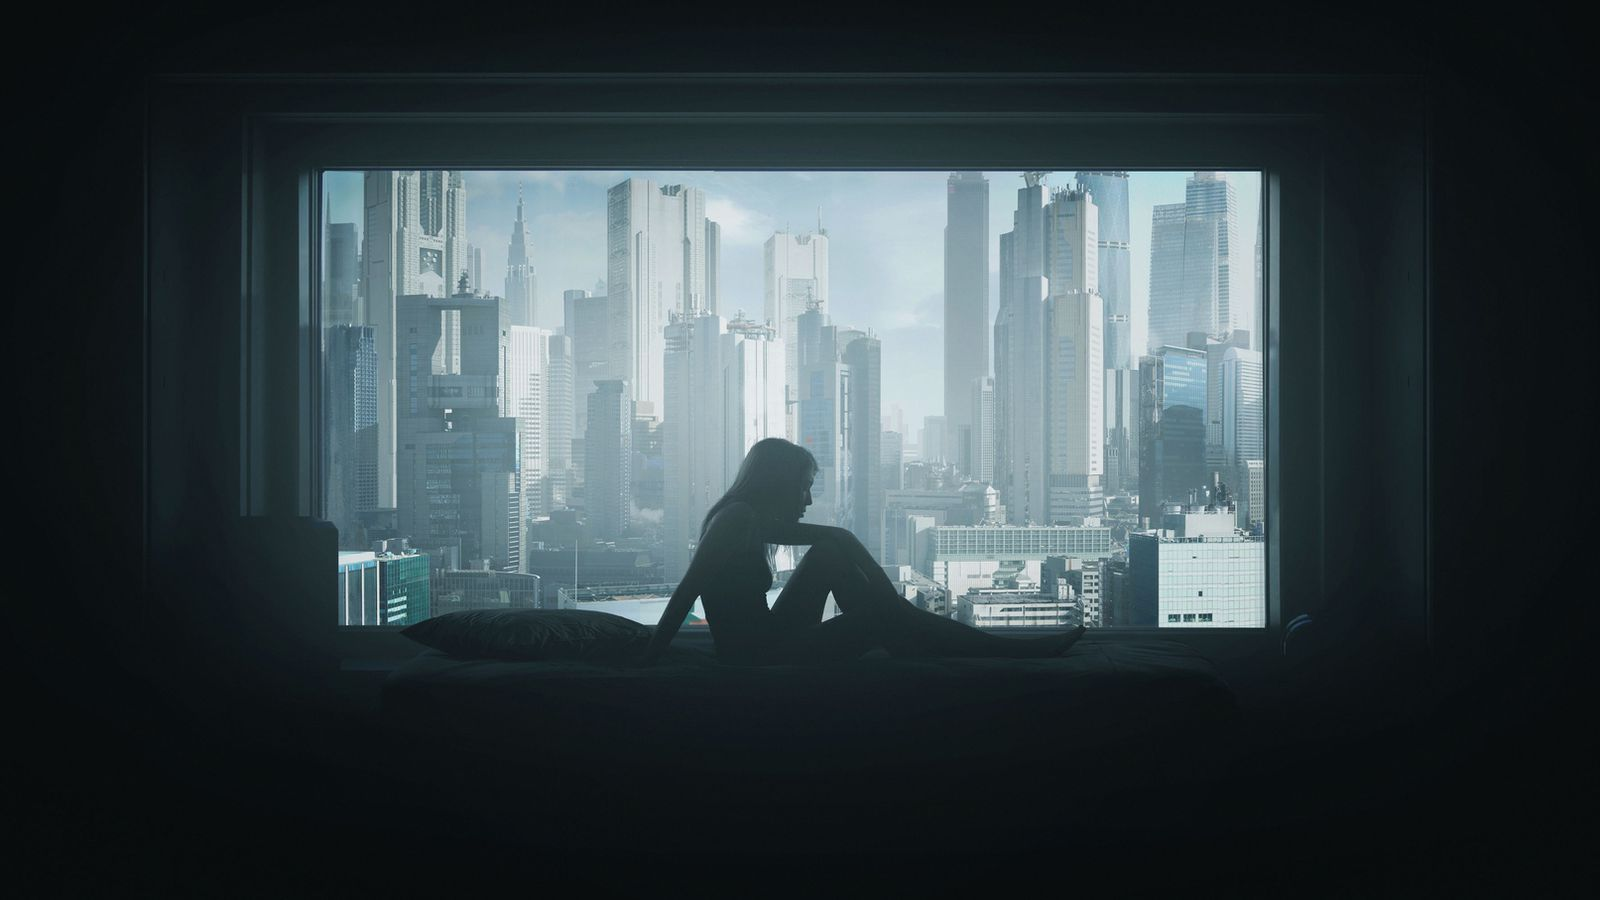 essay on shirows ghost in the shell Ghost in the shell 4 pages 902 words ghost in the shell: reaction paper ghost in the shell is an anime movie adapted from masamune shirow's manga.